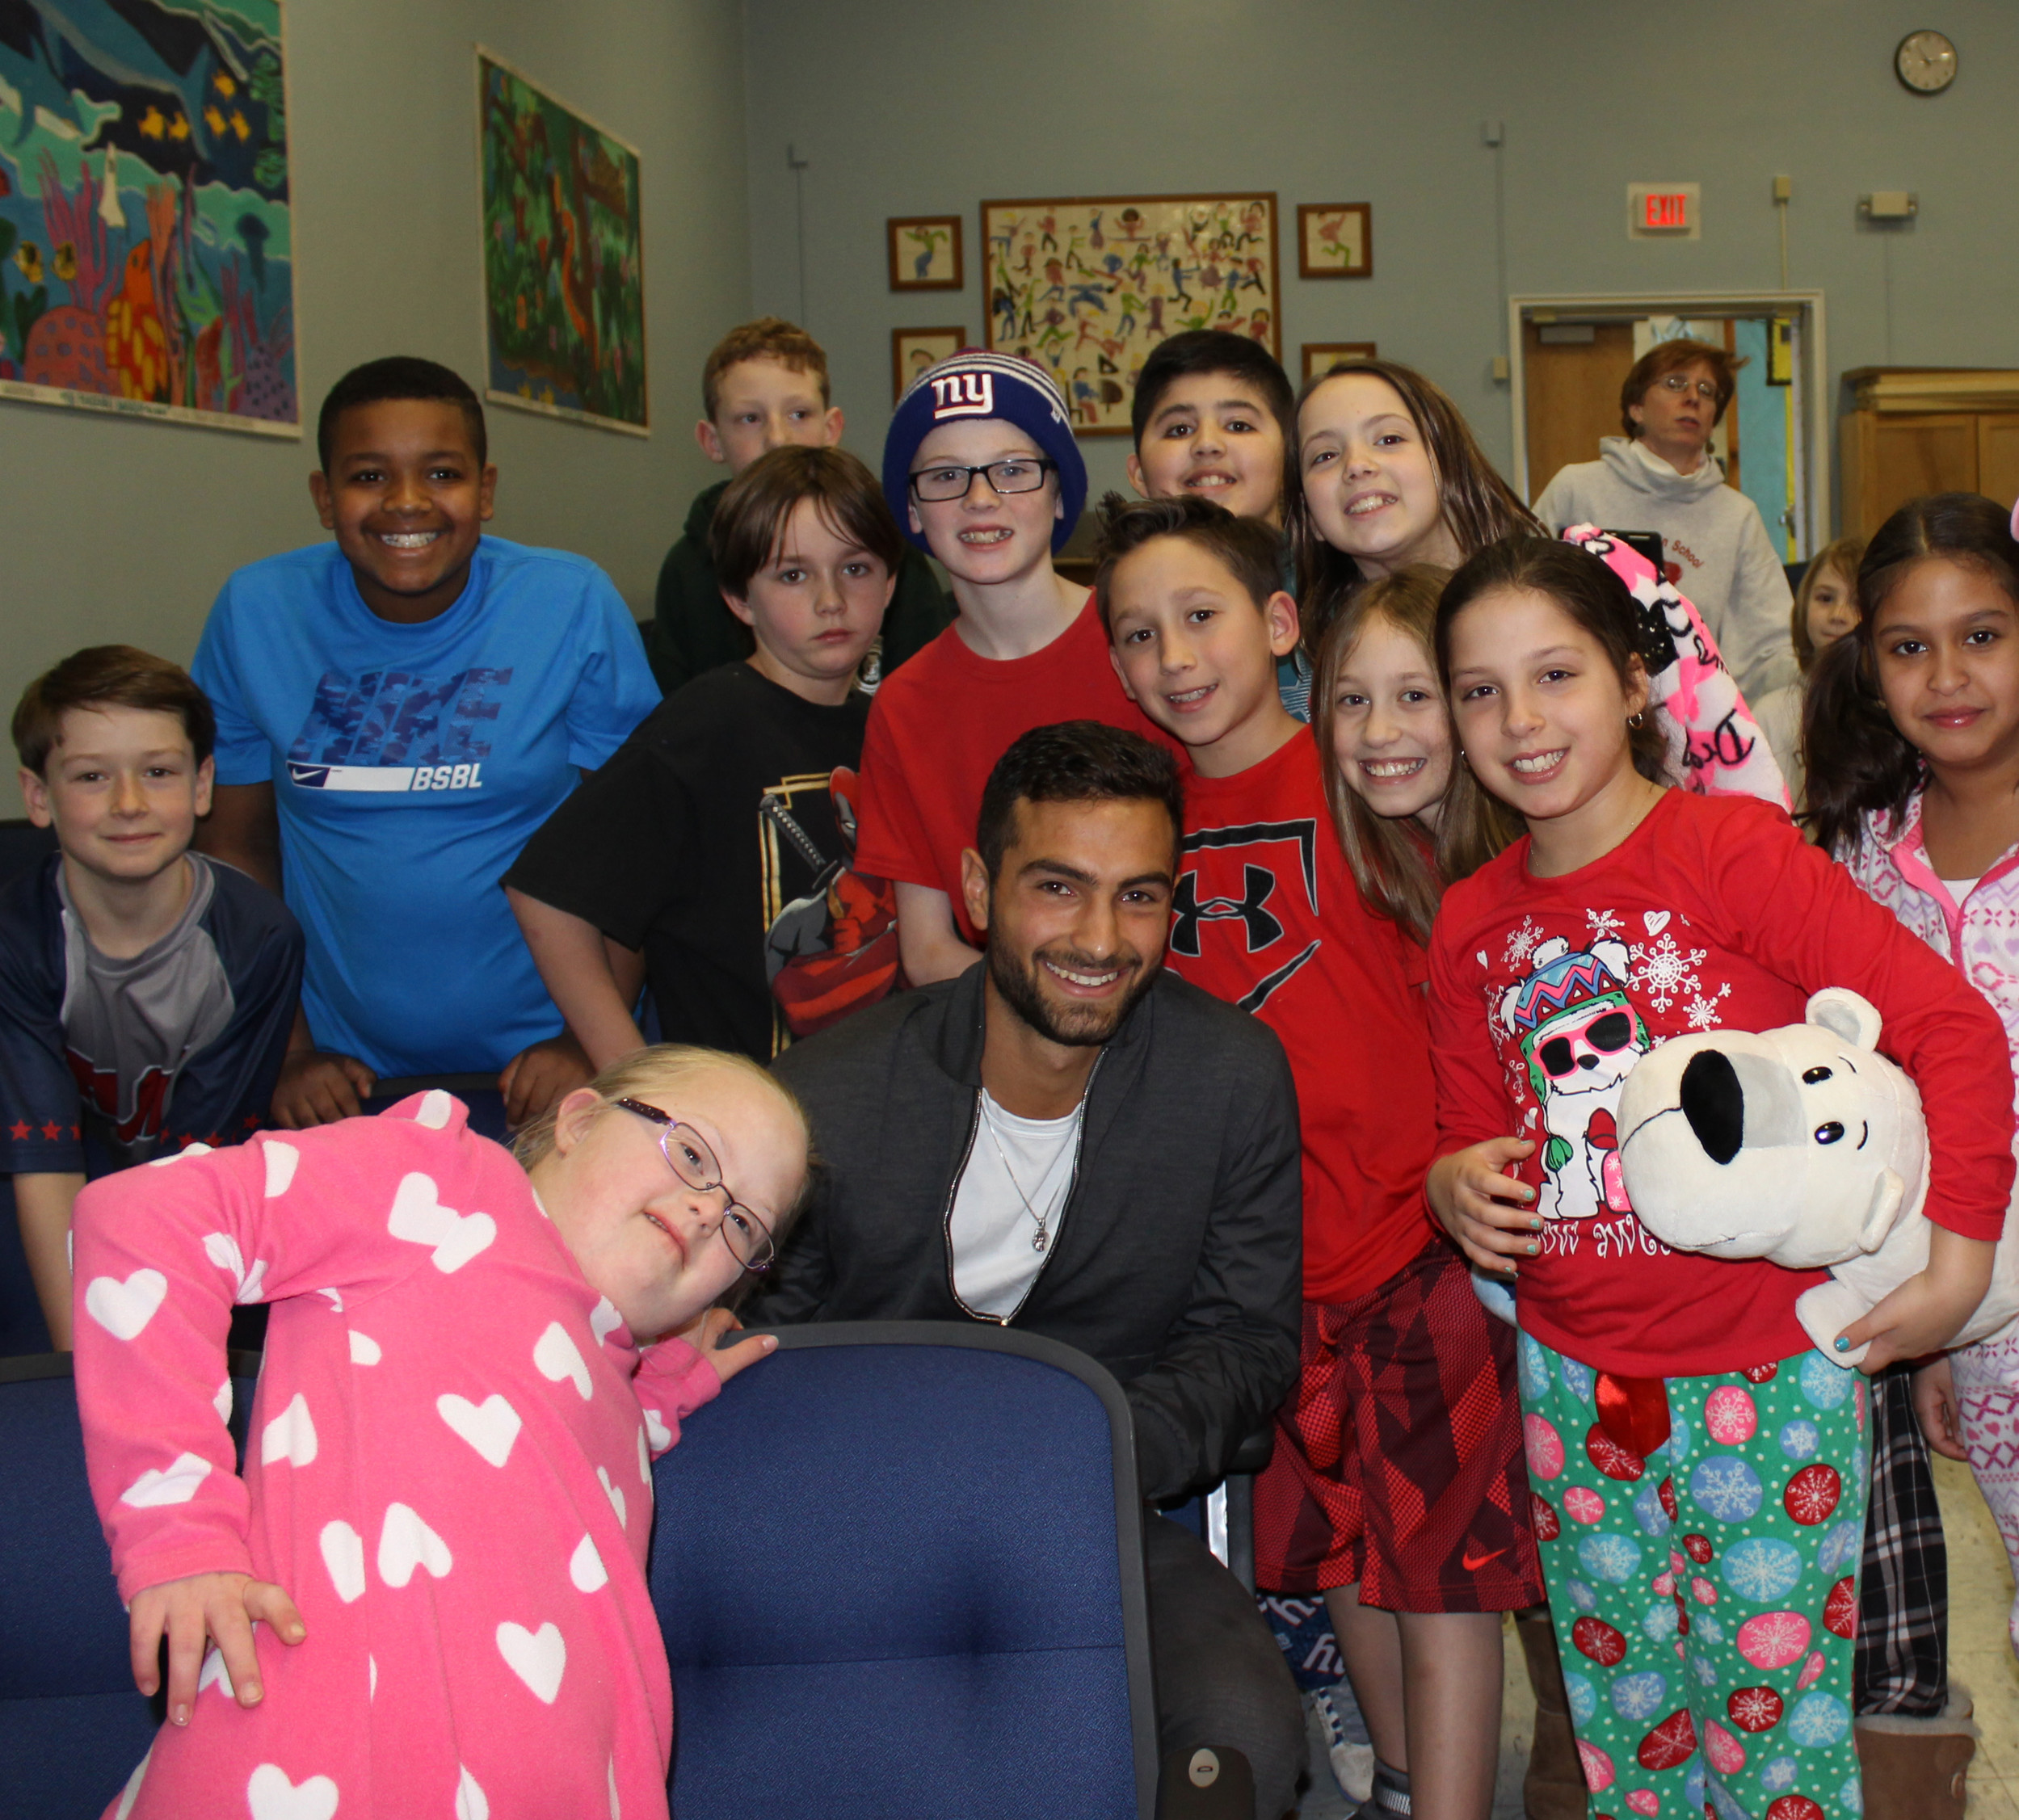 Noah Rubin with fourth- and fifth grade-students at Covert Elementary School in Rockville Centre at their Pajama Day event.